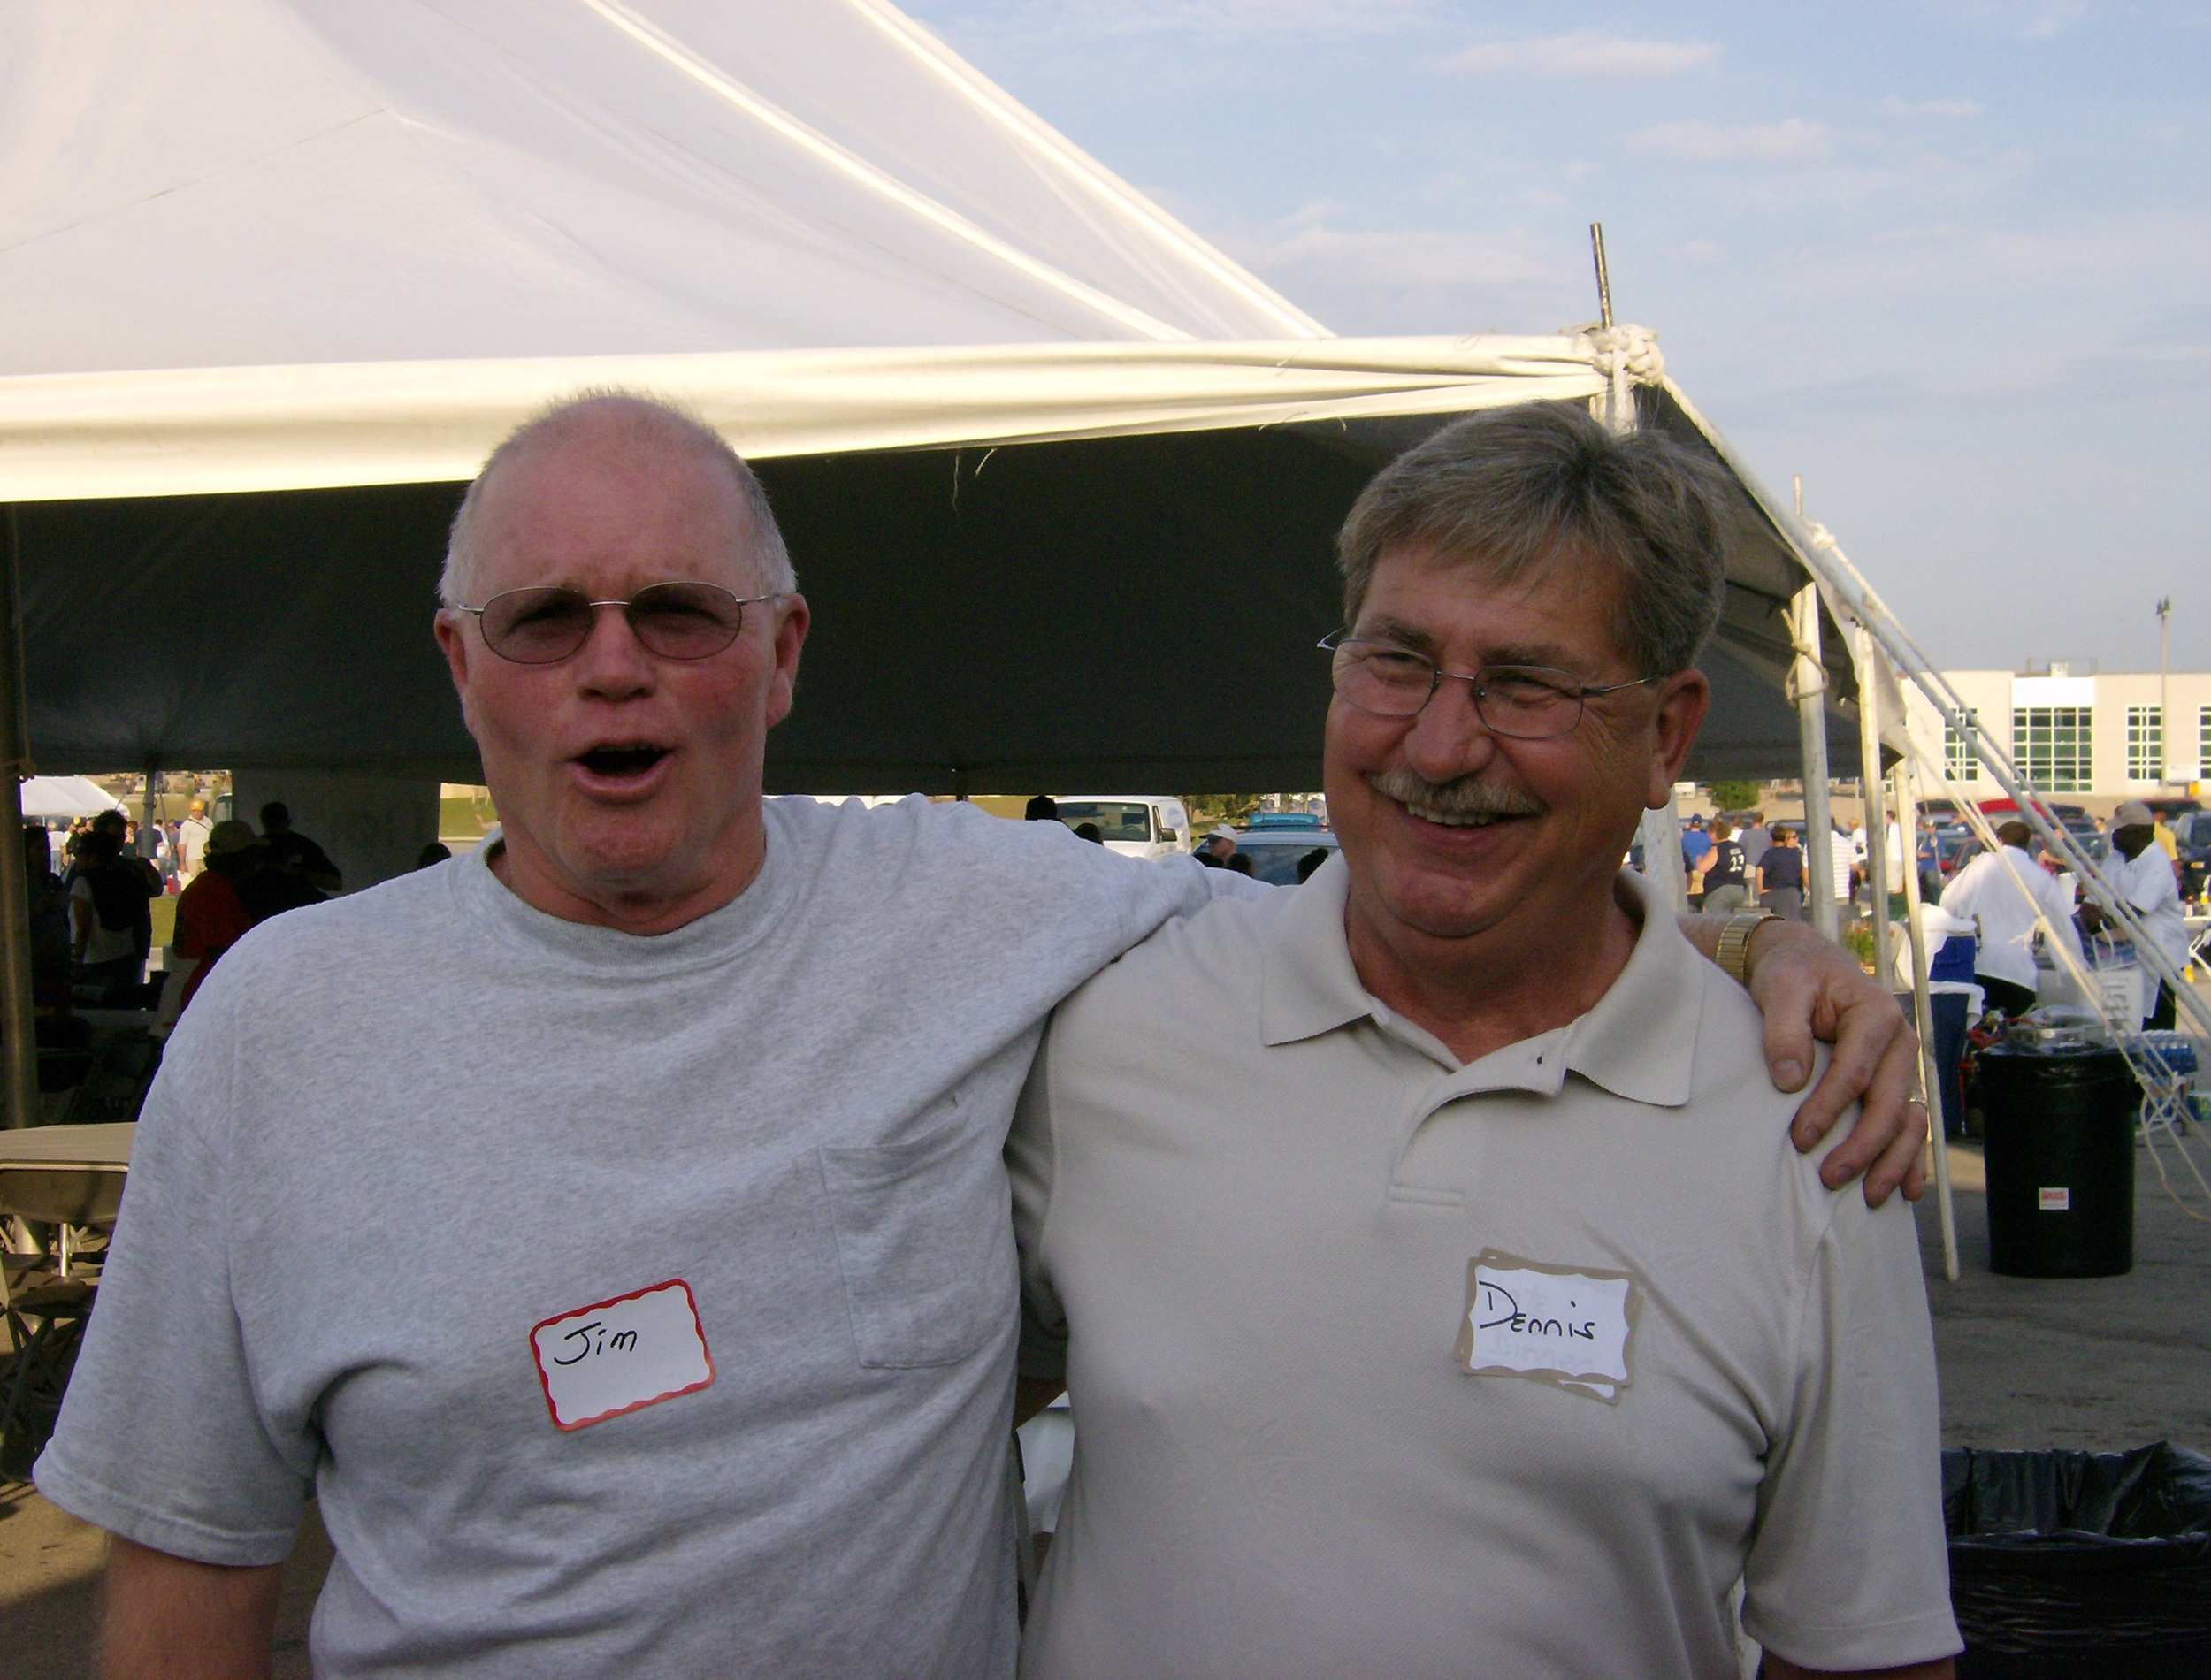 Jim and Dennis at the Gathering's Brewer's Outing in 2007